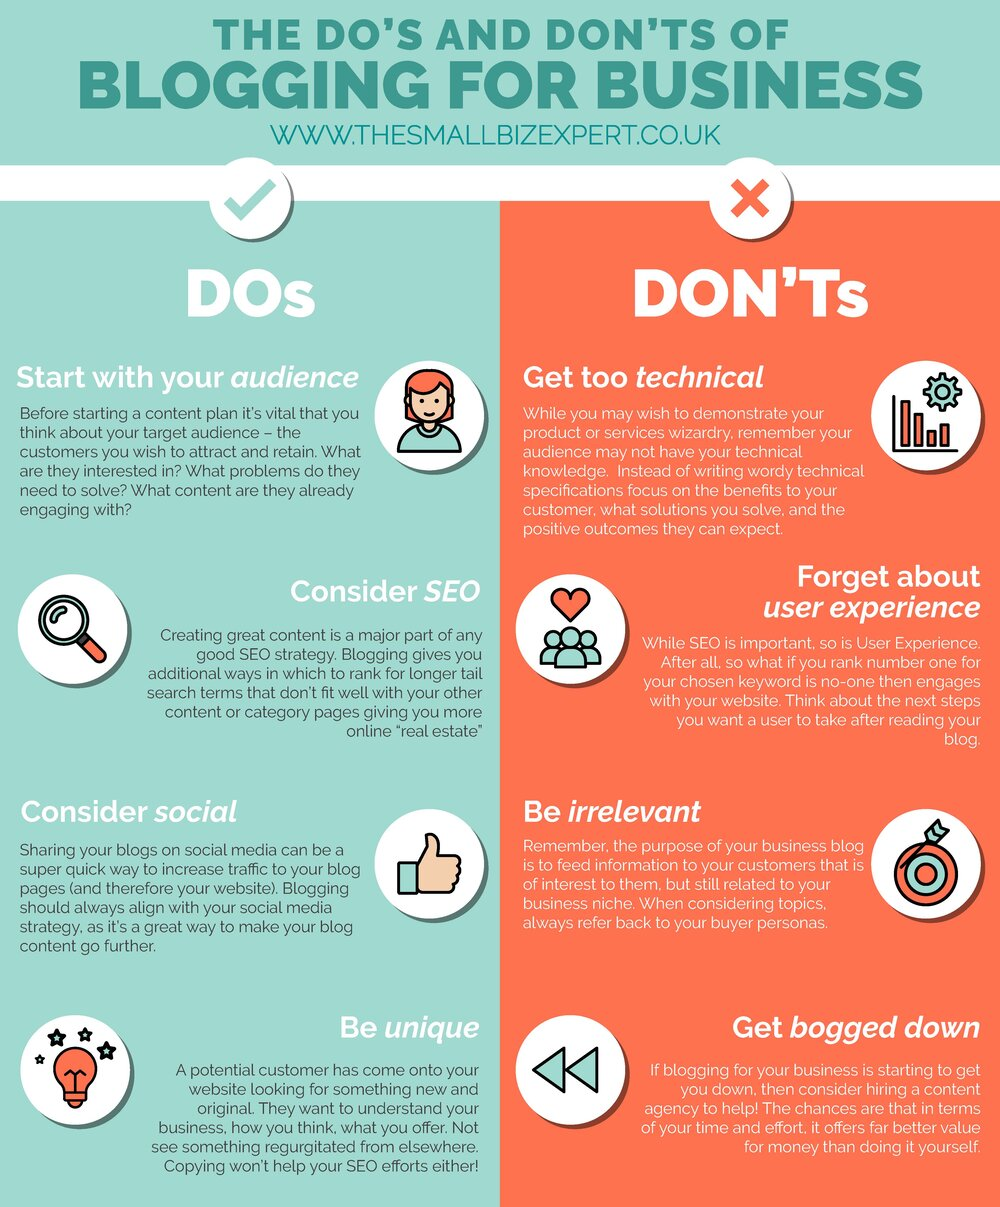 Blogging For Business - The Do's and Don'ts